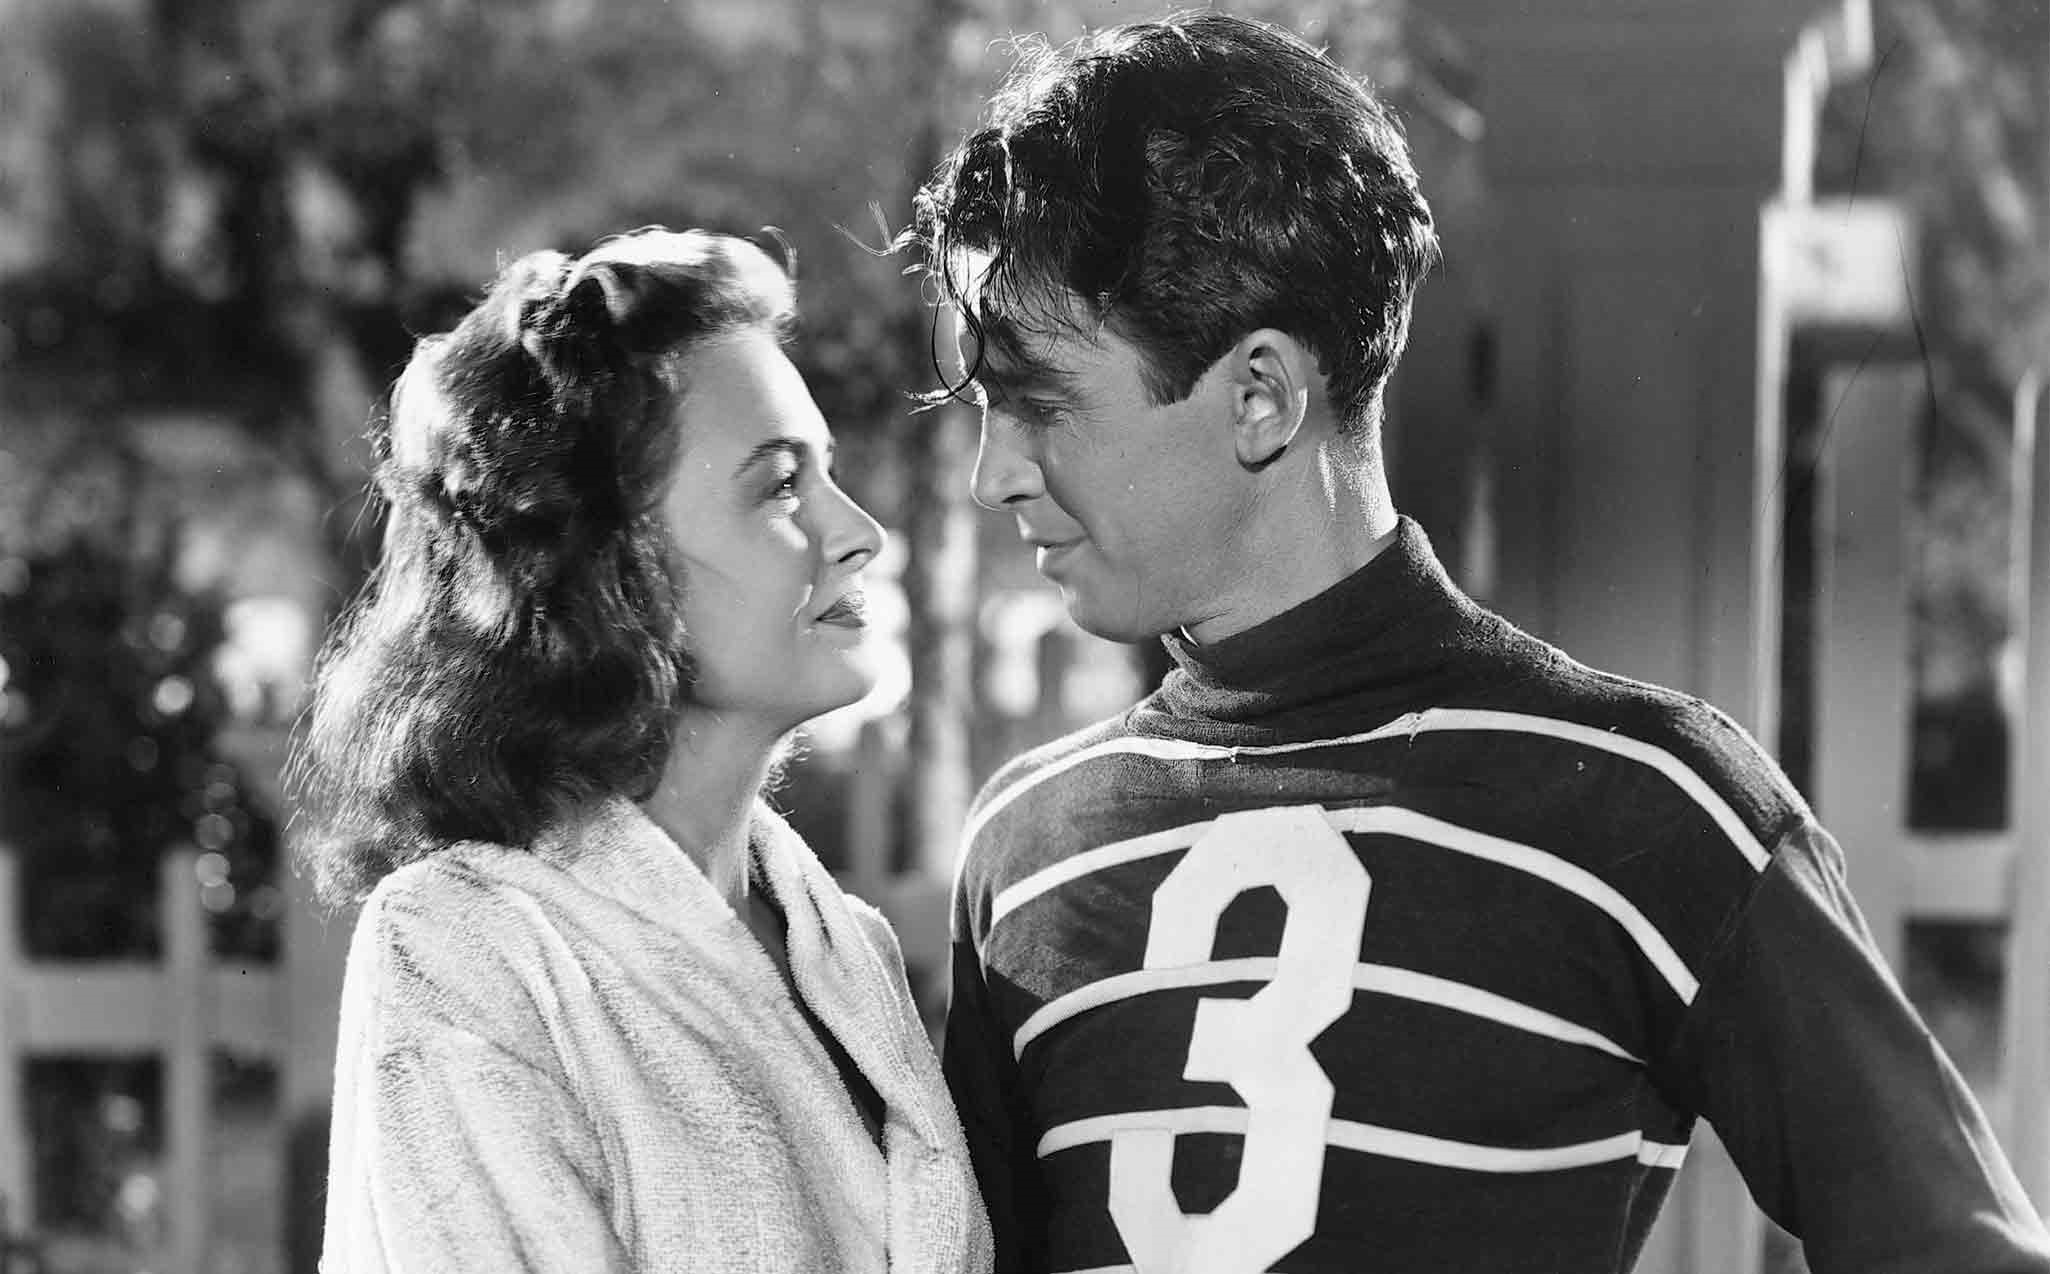 It's a Wonderful Life (1946) Directed by Frank Capra Shown from left: Donna Reed, James Stewart